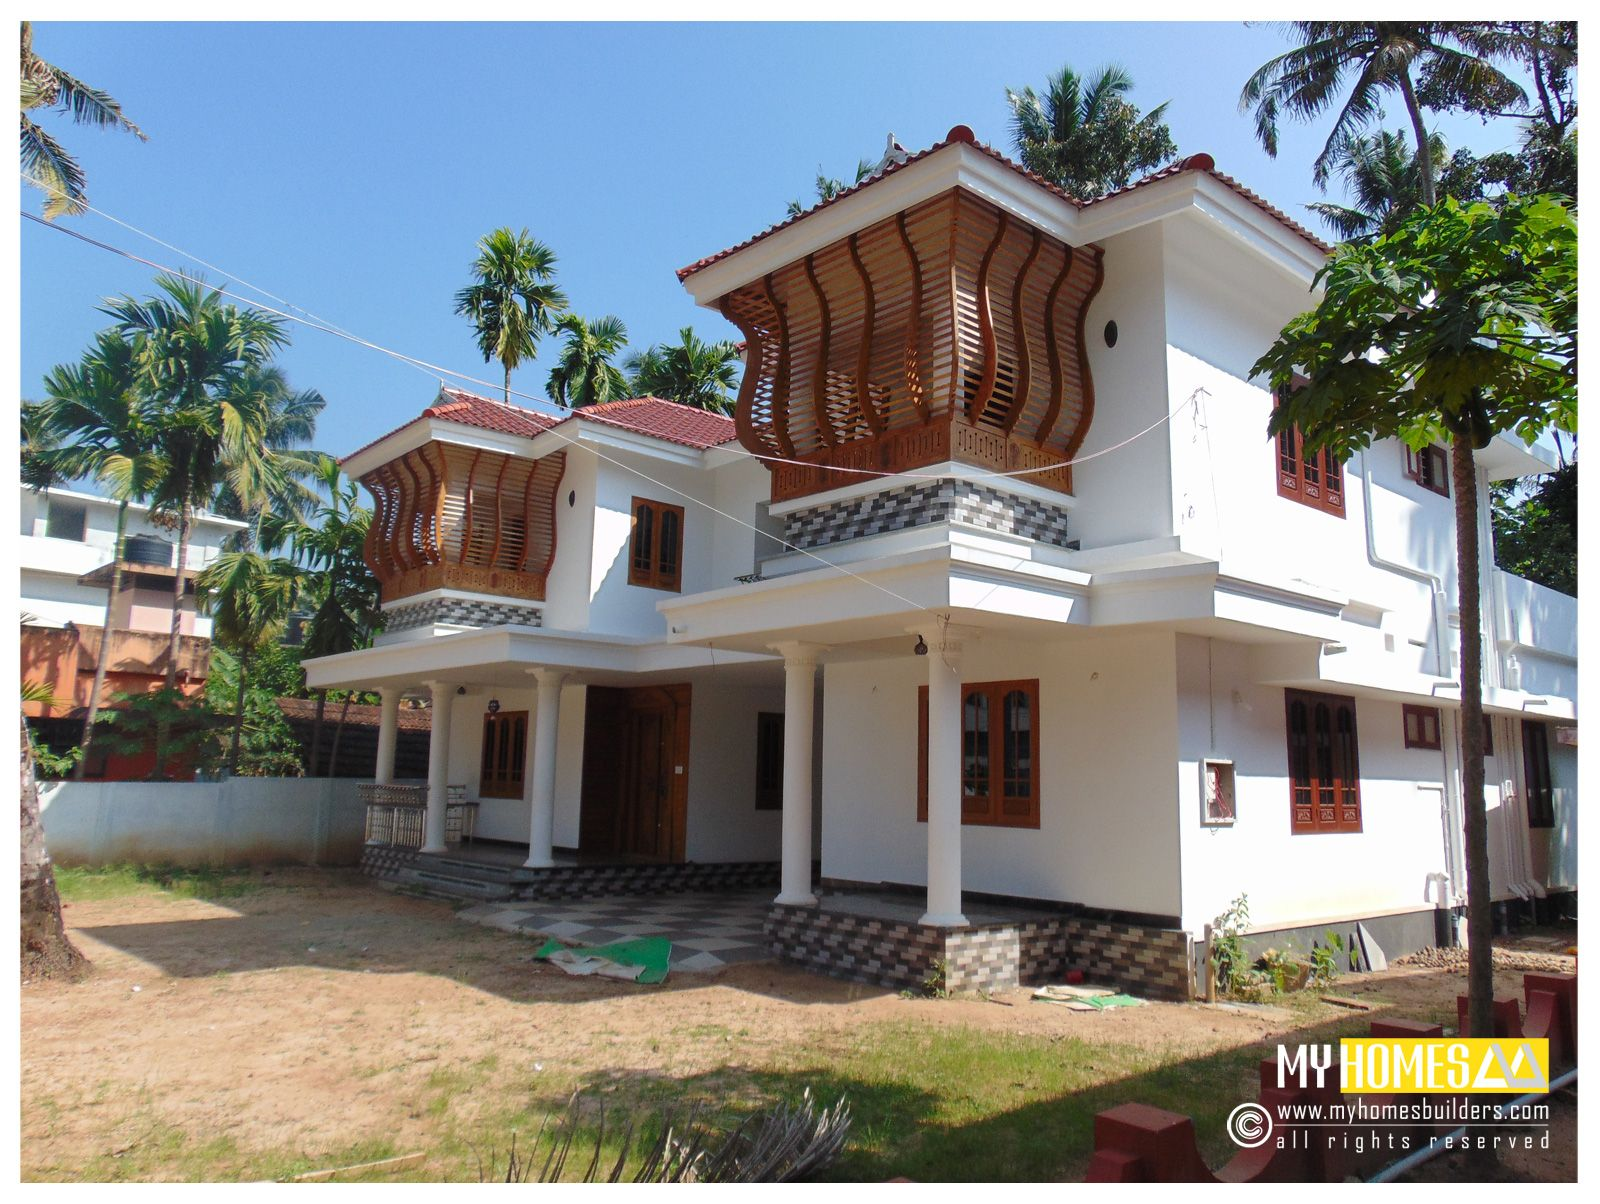 Kerala traditional homes designs 2850 sq ft kerala for Kerala traditional home plans with photos